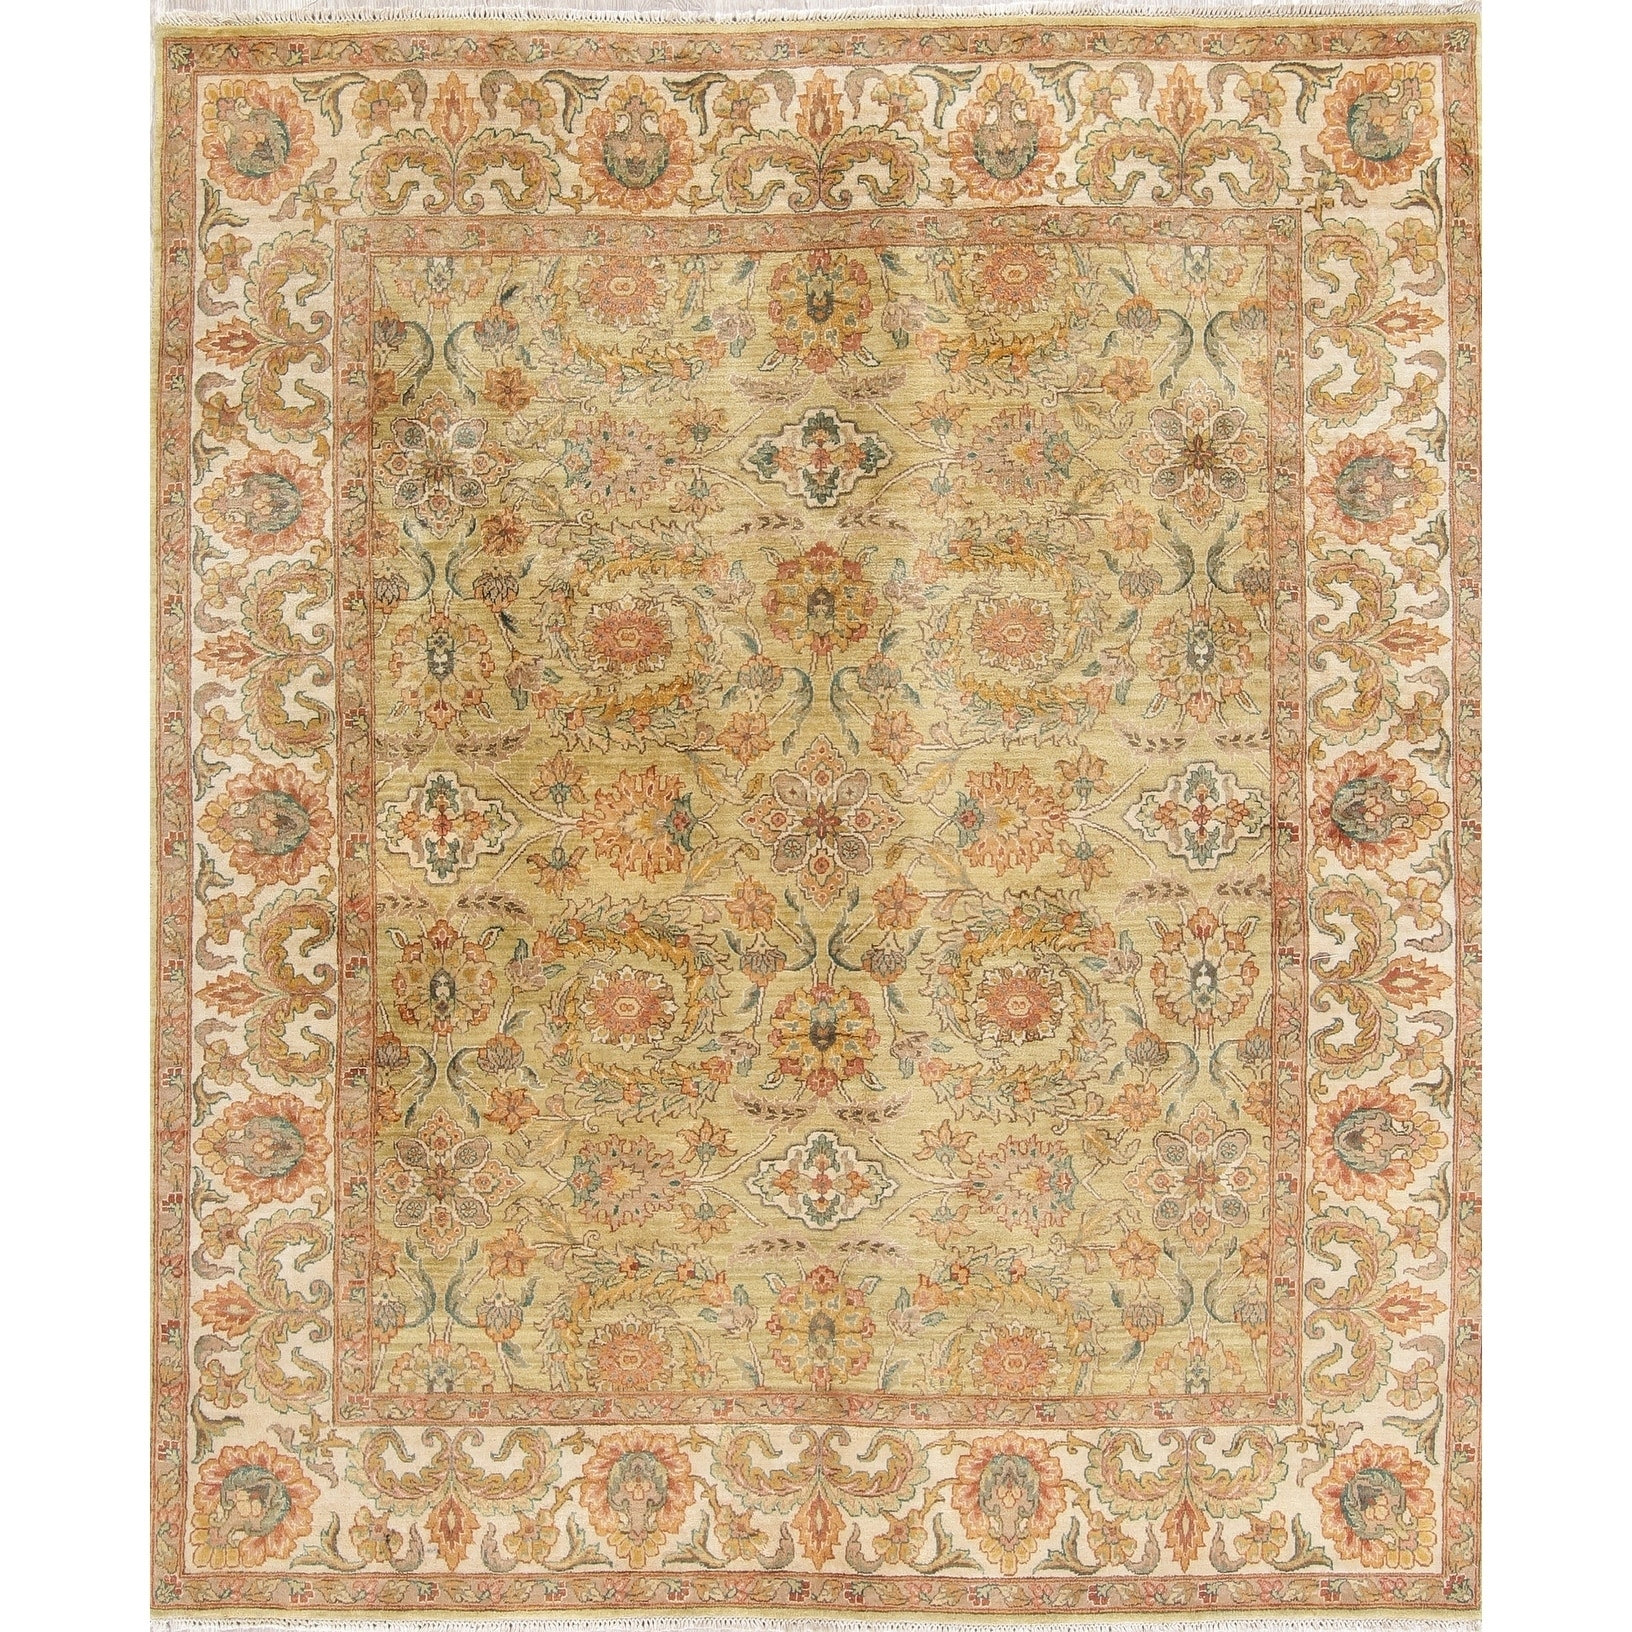 Agra Oriental Hand Knotted Wool Indian Area Rug 9 8 X 8 2 9 8 X 8 2 Gold Oriental Area Rugs Colorful Rugs Blue Area Rugs